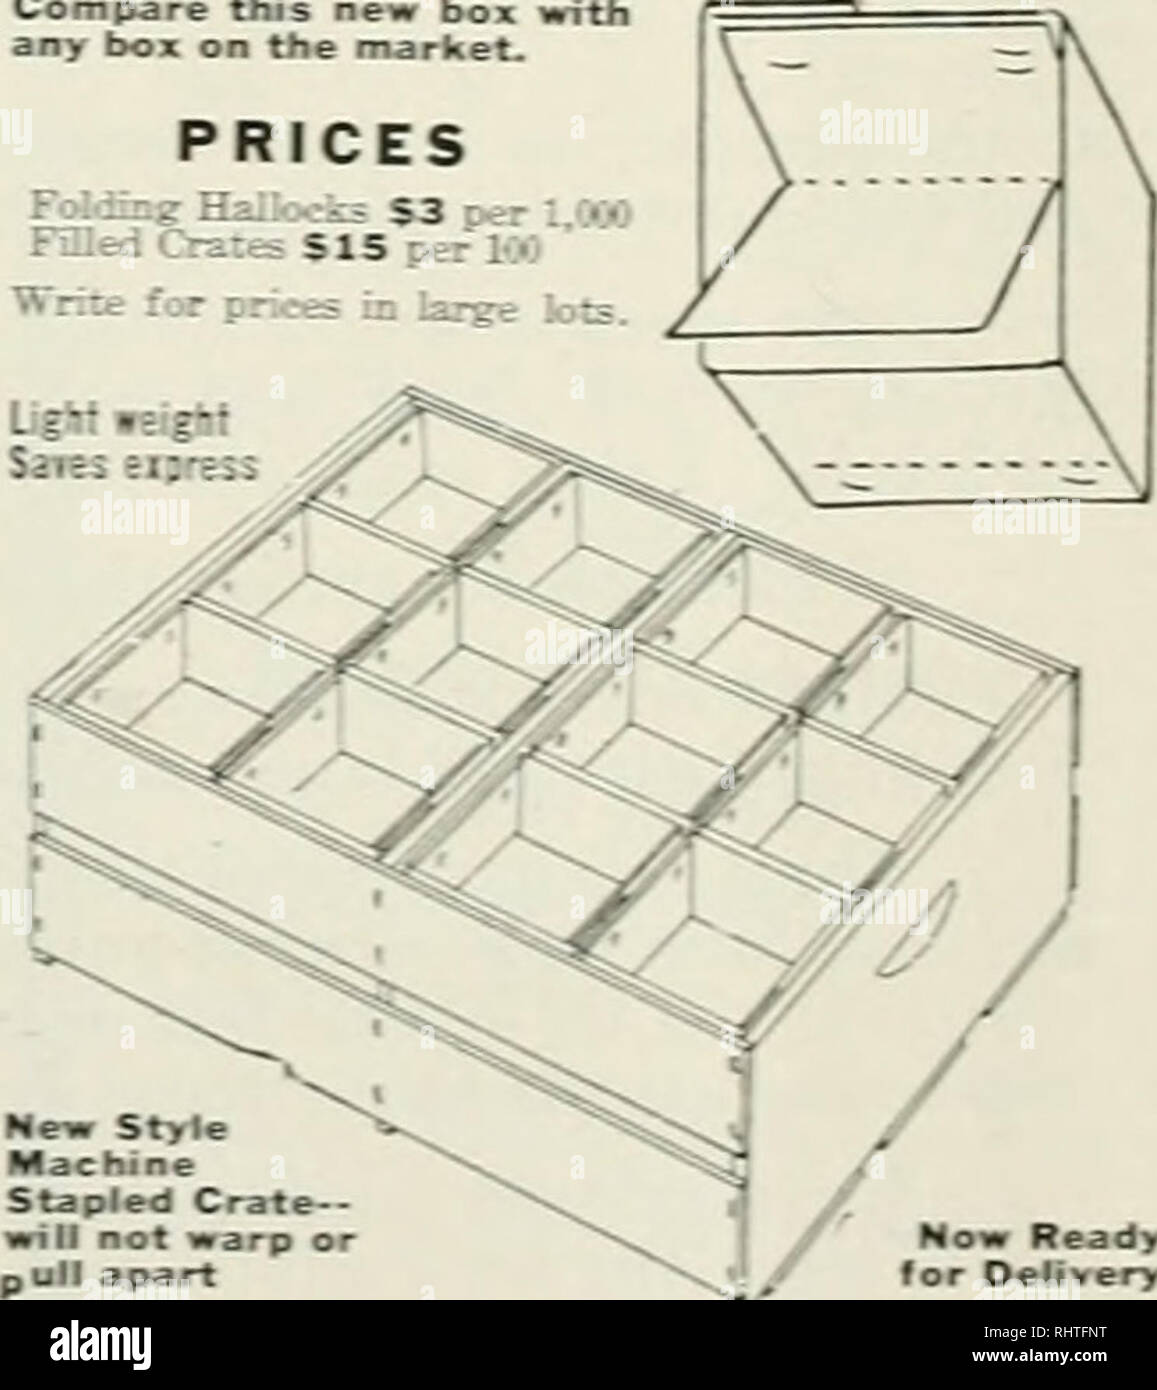 . Better fruit. Fruit-culture. BERRY BOXESand CRATES IMPROVED ONE-PIECE FOLDING TOP STITCHING ihe oce-pieee boctom makesrthe boT '-' - y. 'So loss frxxn misfits and breakage ^ - Tj^c. and the bottoinneviK'drops oat. Compare this new box with any box on the market. PRICES Feeding Hailooks S3 oer ' '••-. Fmed Crates $15 per KO Write for [K^ees in large lots.. Now Ready for Delivery lItl:4iR^^i >Seedco:. Please note that these images are extracted from scanned page images that may have been digitally enhanced for readability - coloration and appearance of these illustrations may not perfectly - Stock Image